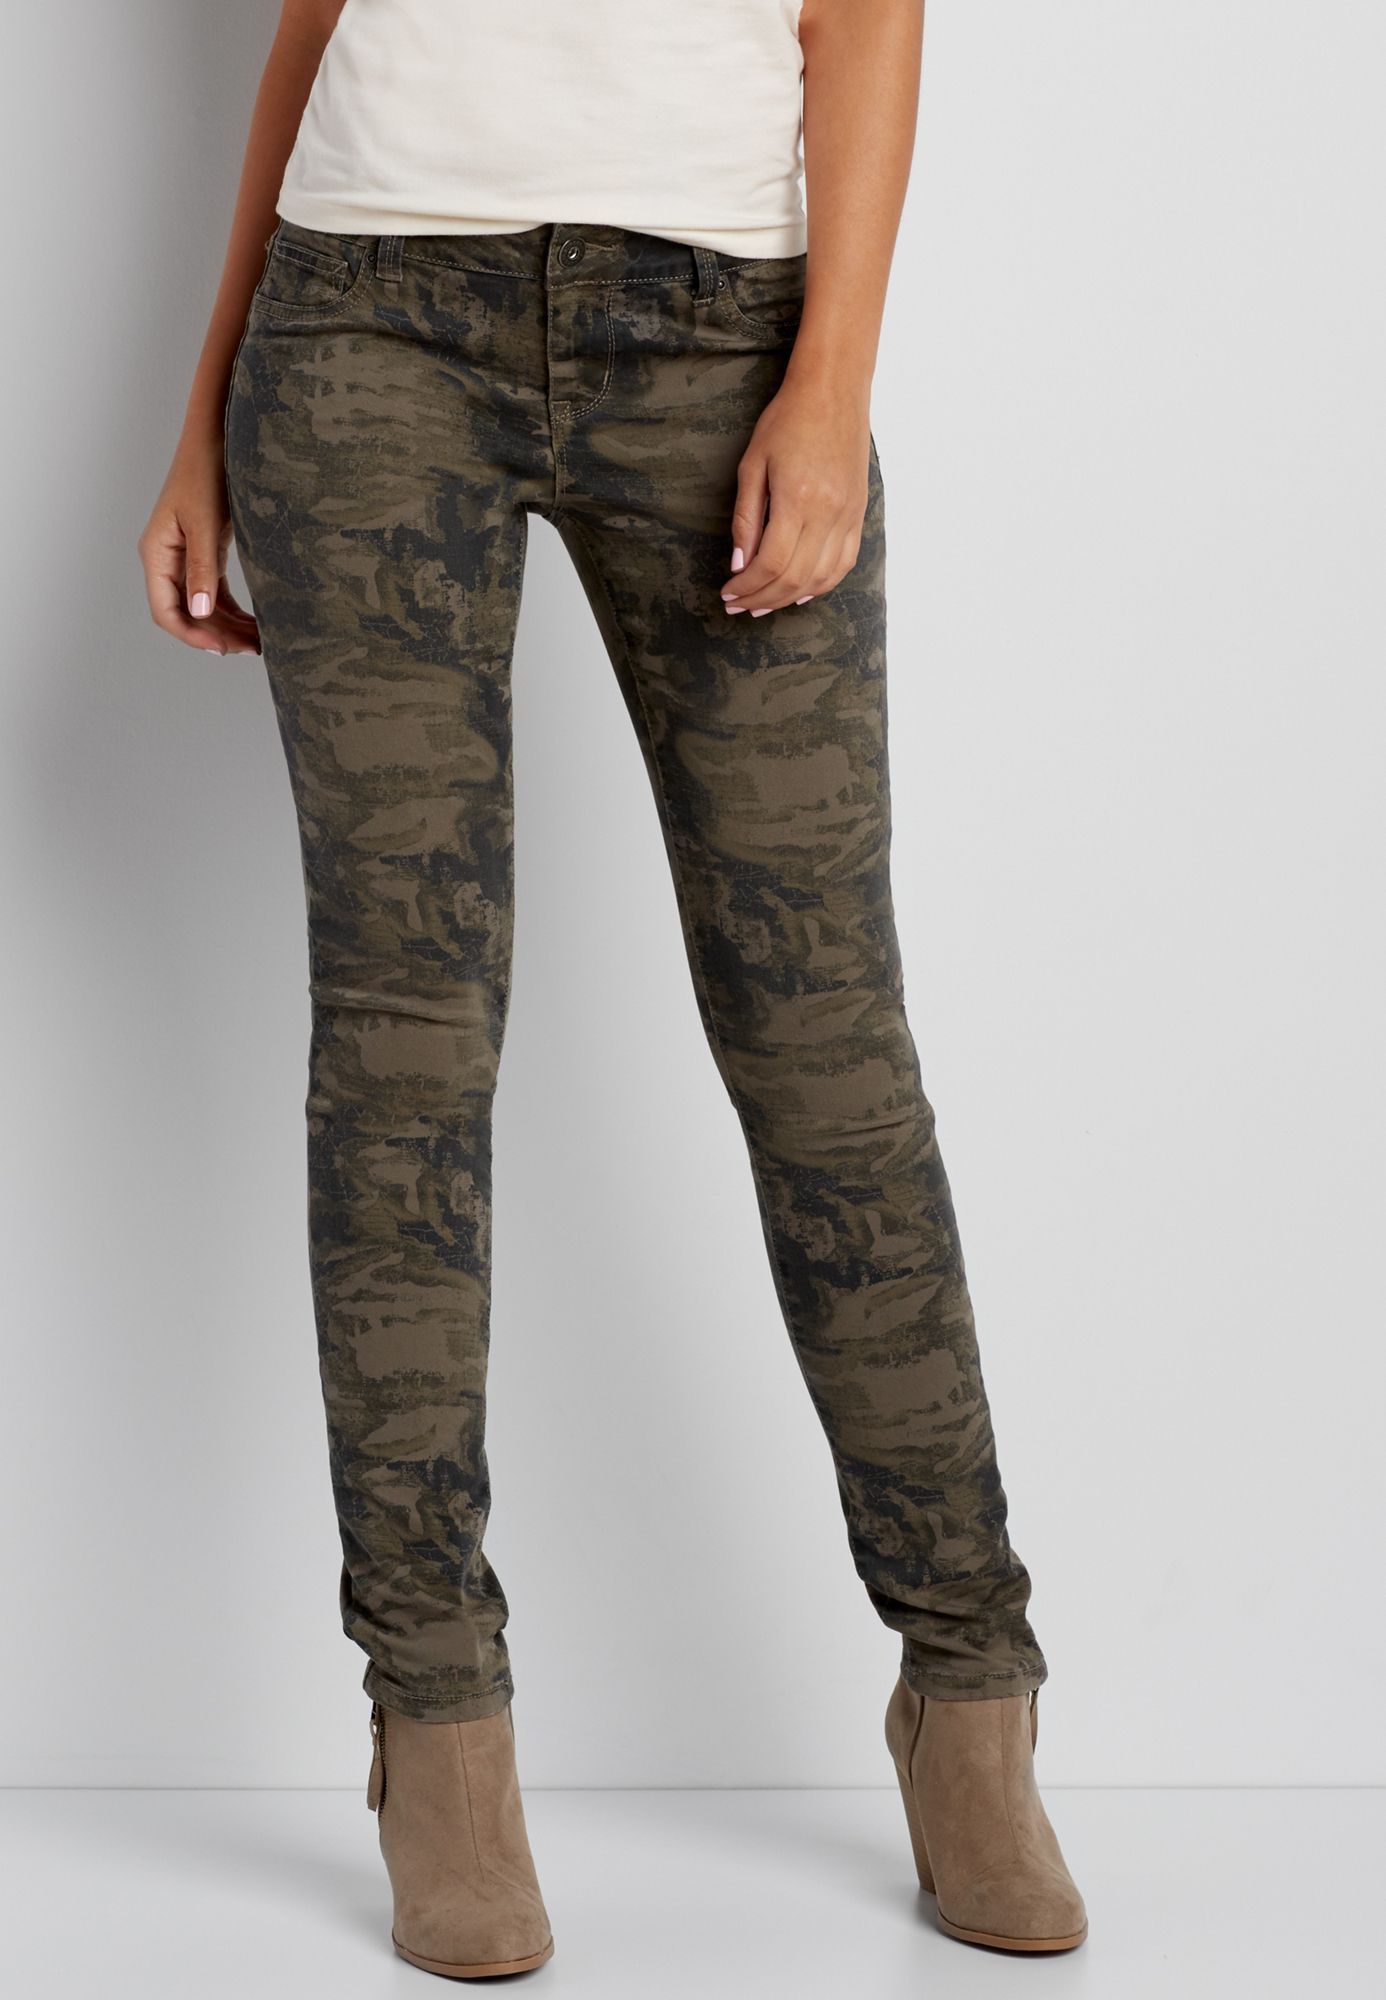 ccb7785300 DenimFlex™ jegging in olive green camo print (original price, $39.00)  available at #Maurices